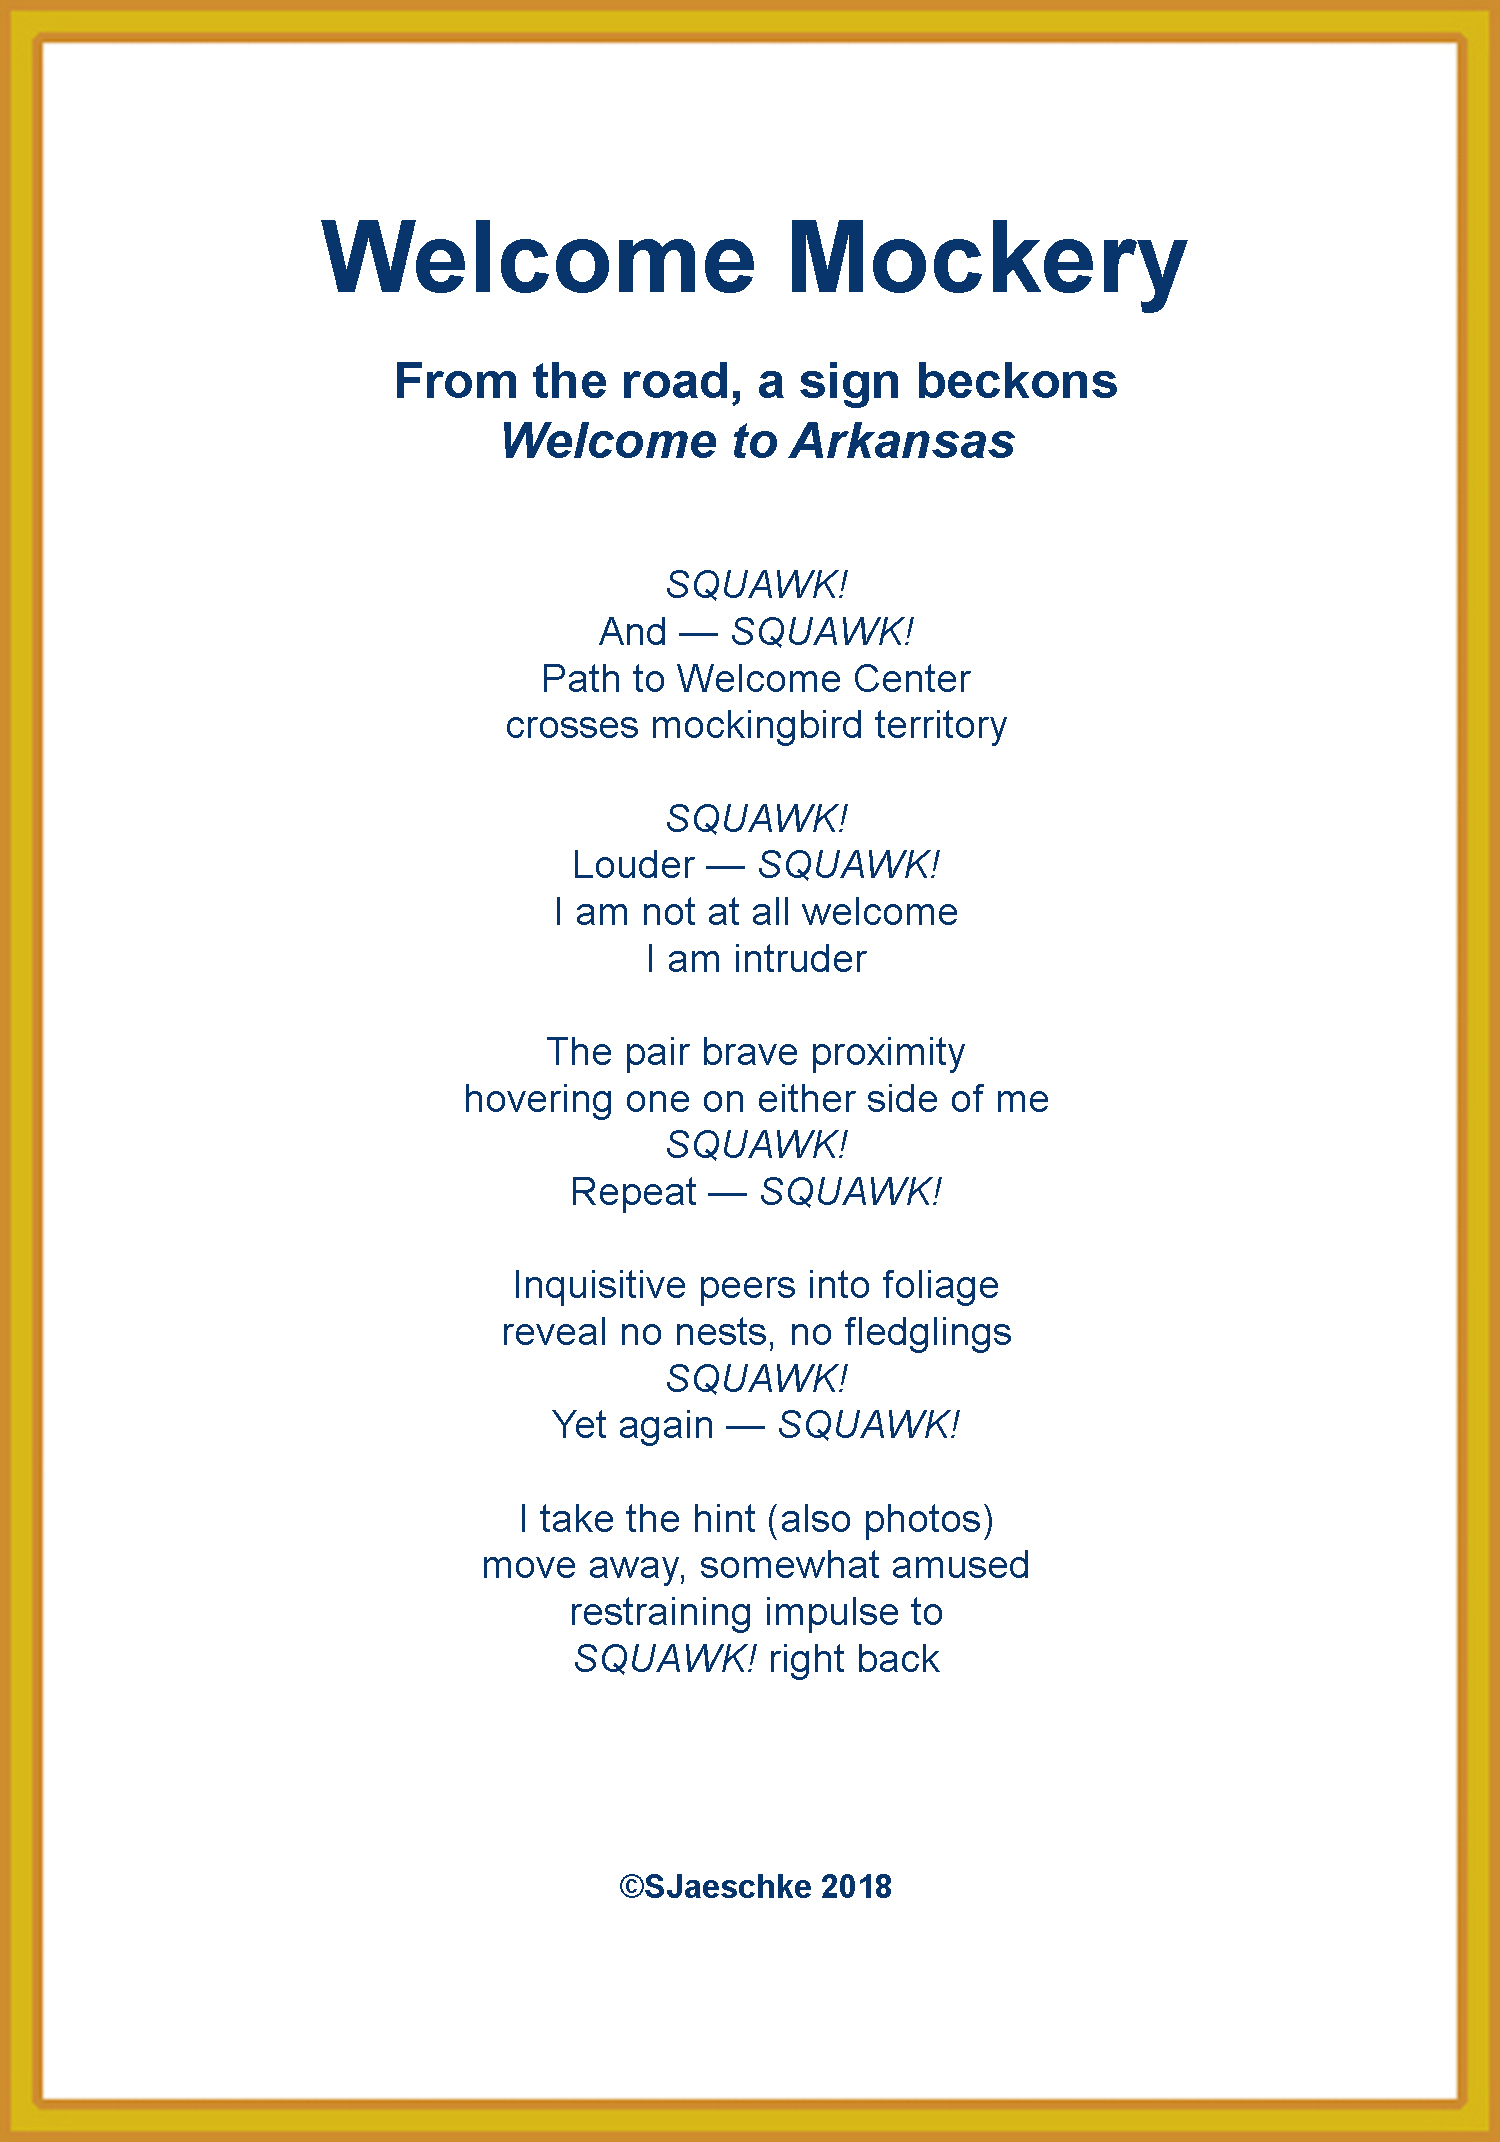 Post_2018-06-12_Poem_WelcomeMockery